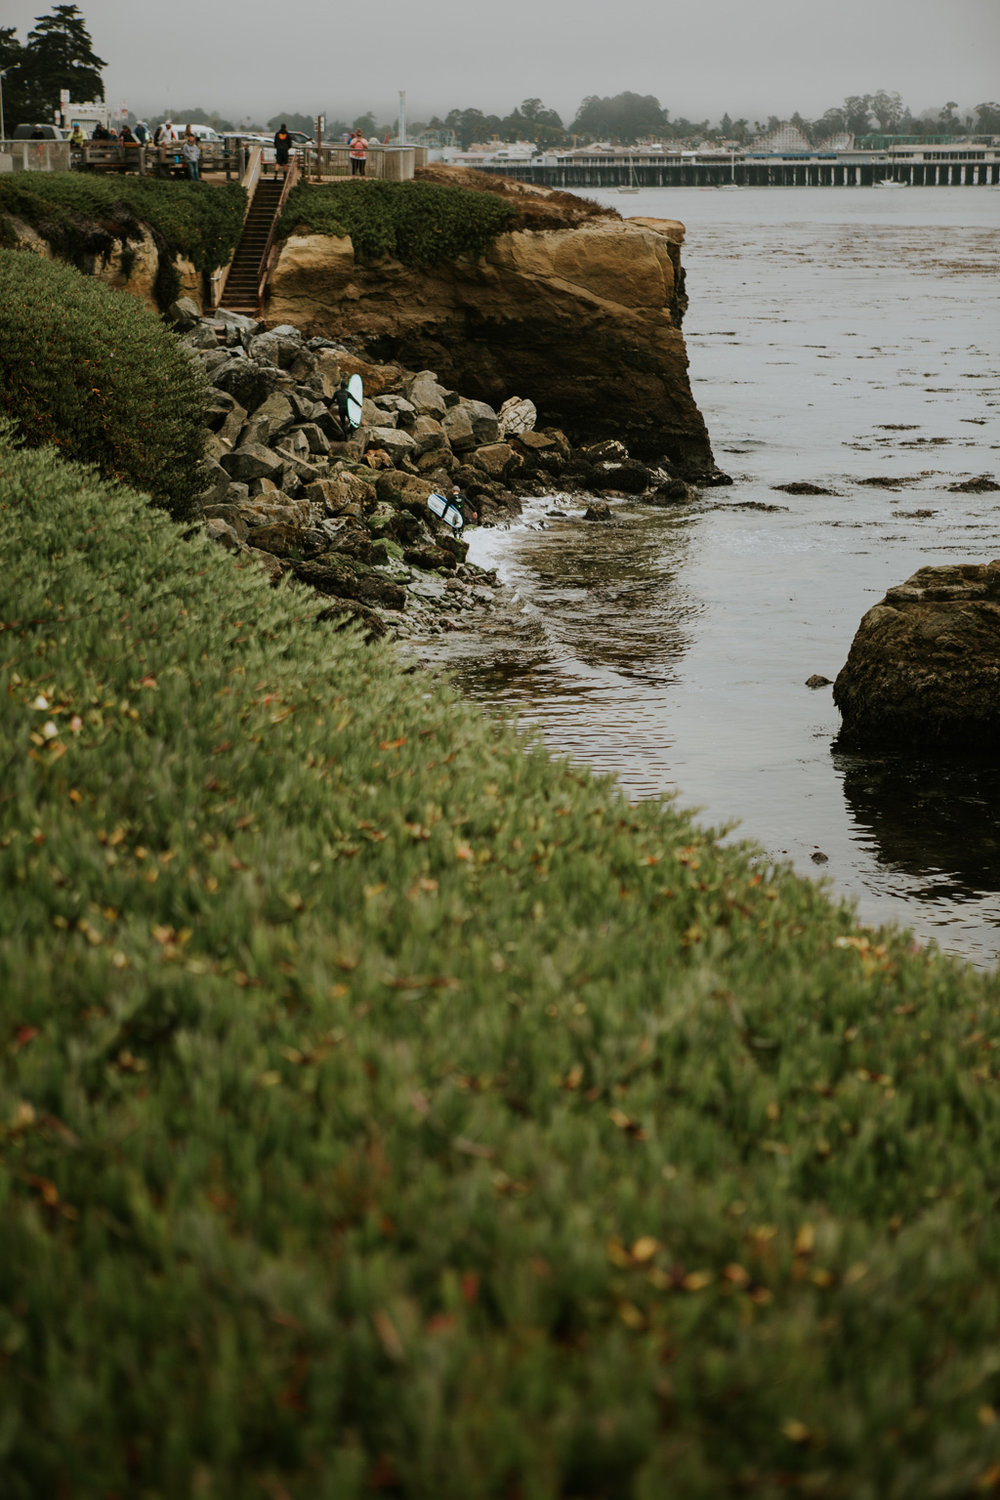 CindyGiovagnoli_SantCruz_SanJose_SanFrancisco_NelderGrove_sea_lions_boardwalk_hapas_brewery_sourdough_ocean_half_moon_bay_California-077.jpg